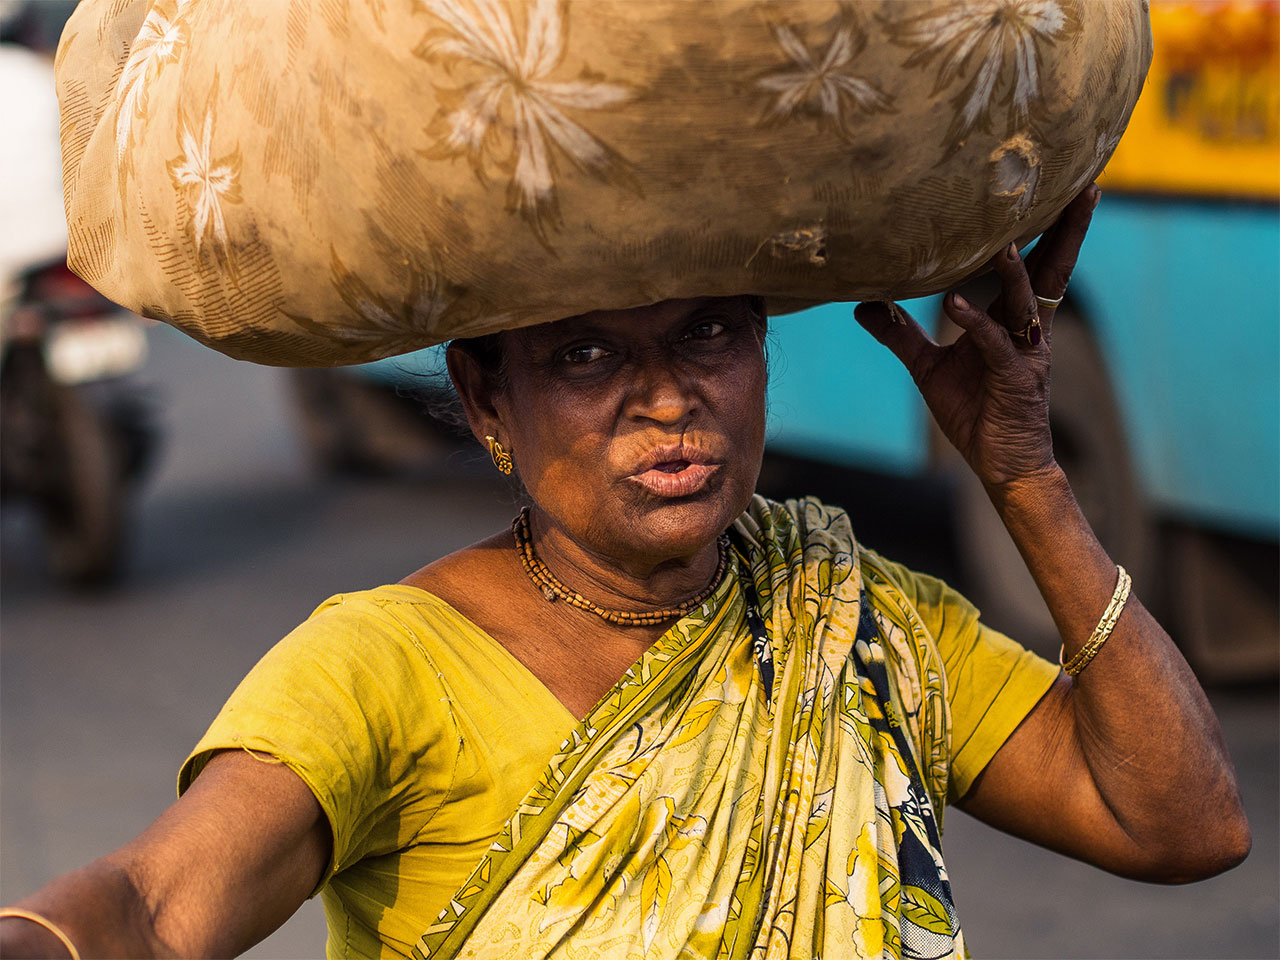 Kolkata Woman